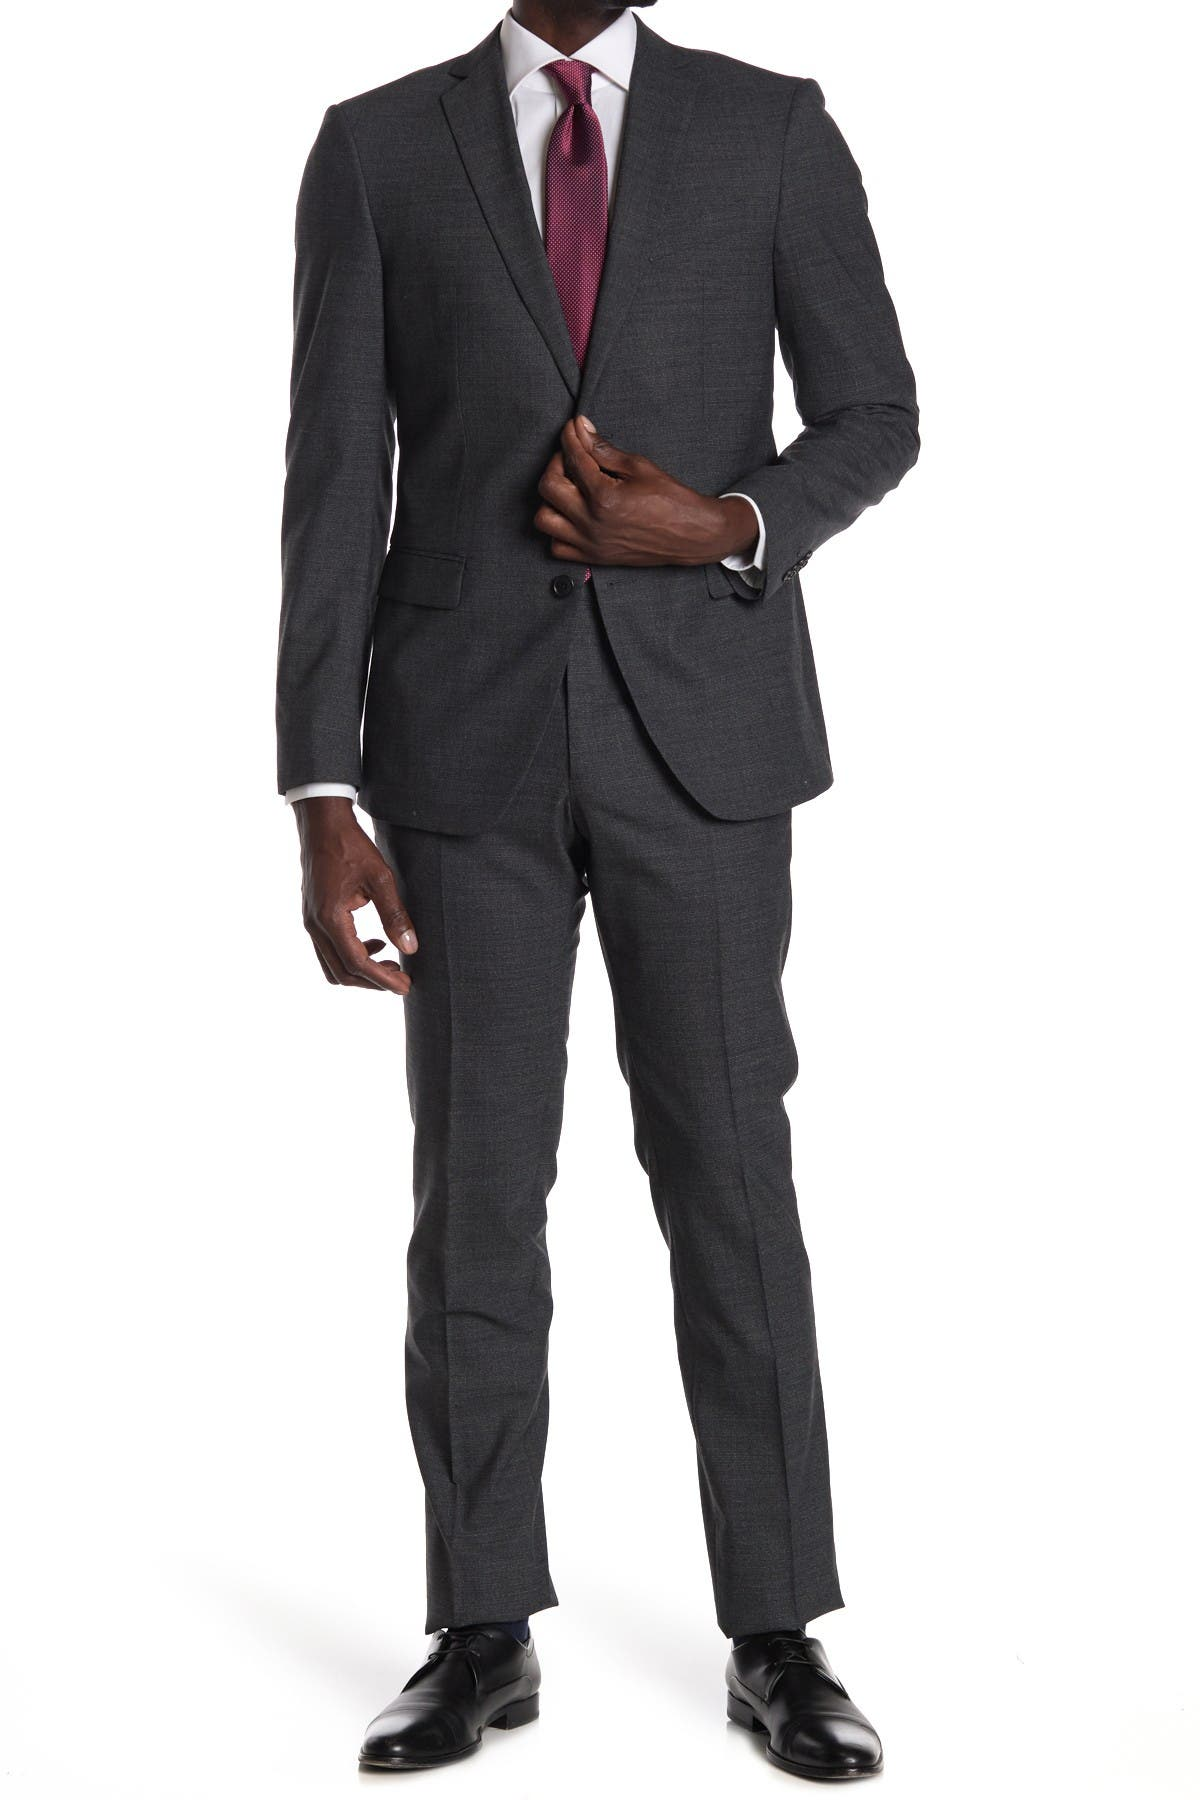 Image of John Varvatos Collection Charcoal Micro Print Two Button Notch Lapel Suit